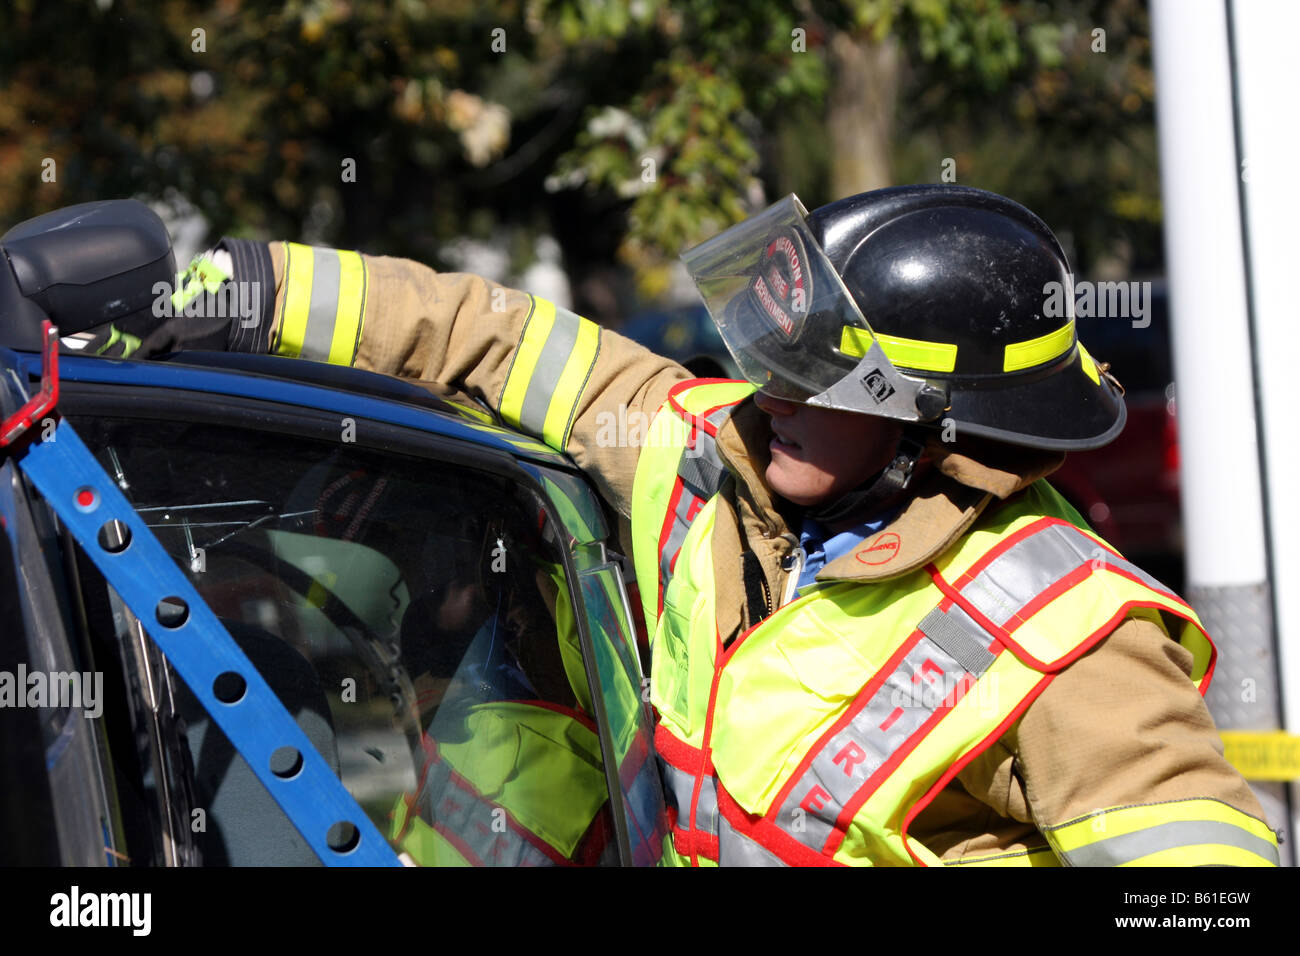 The windows are broken and the firefighter is removing glass remnants from the door frame of a stabilized rollovered - Stock Image